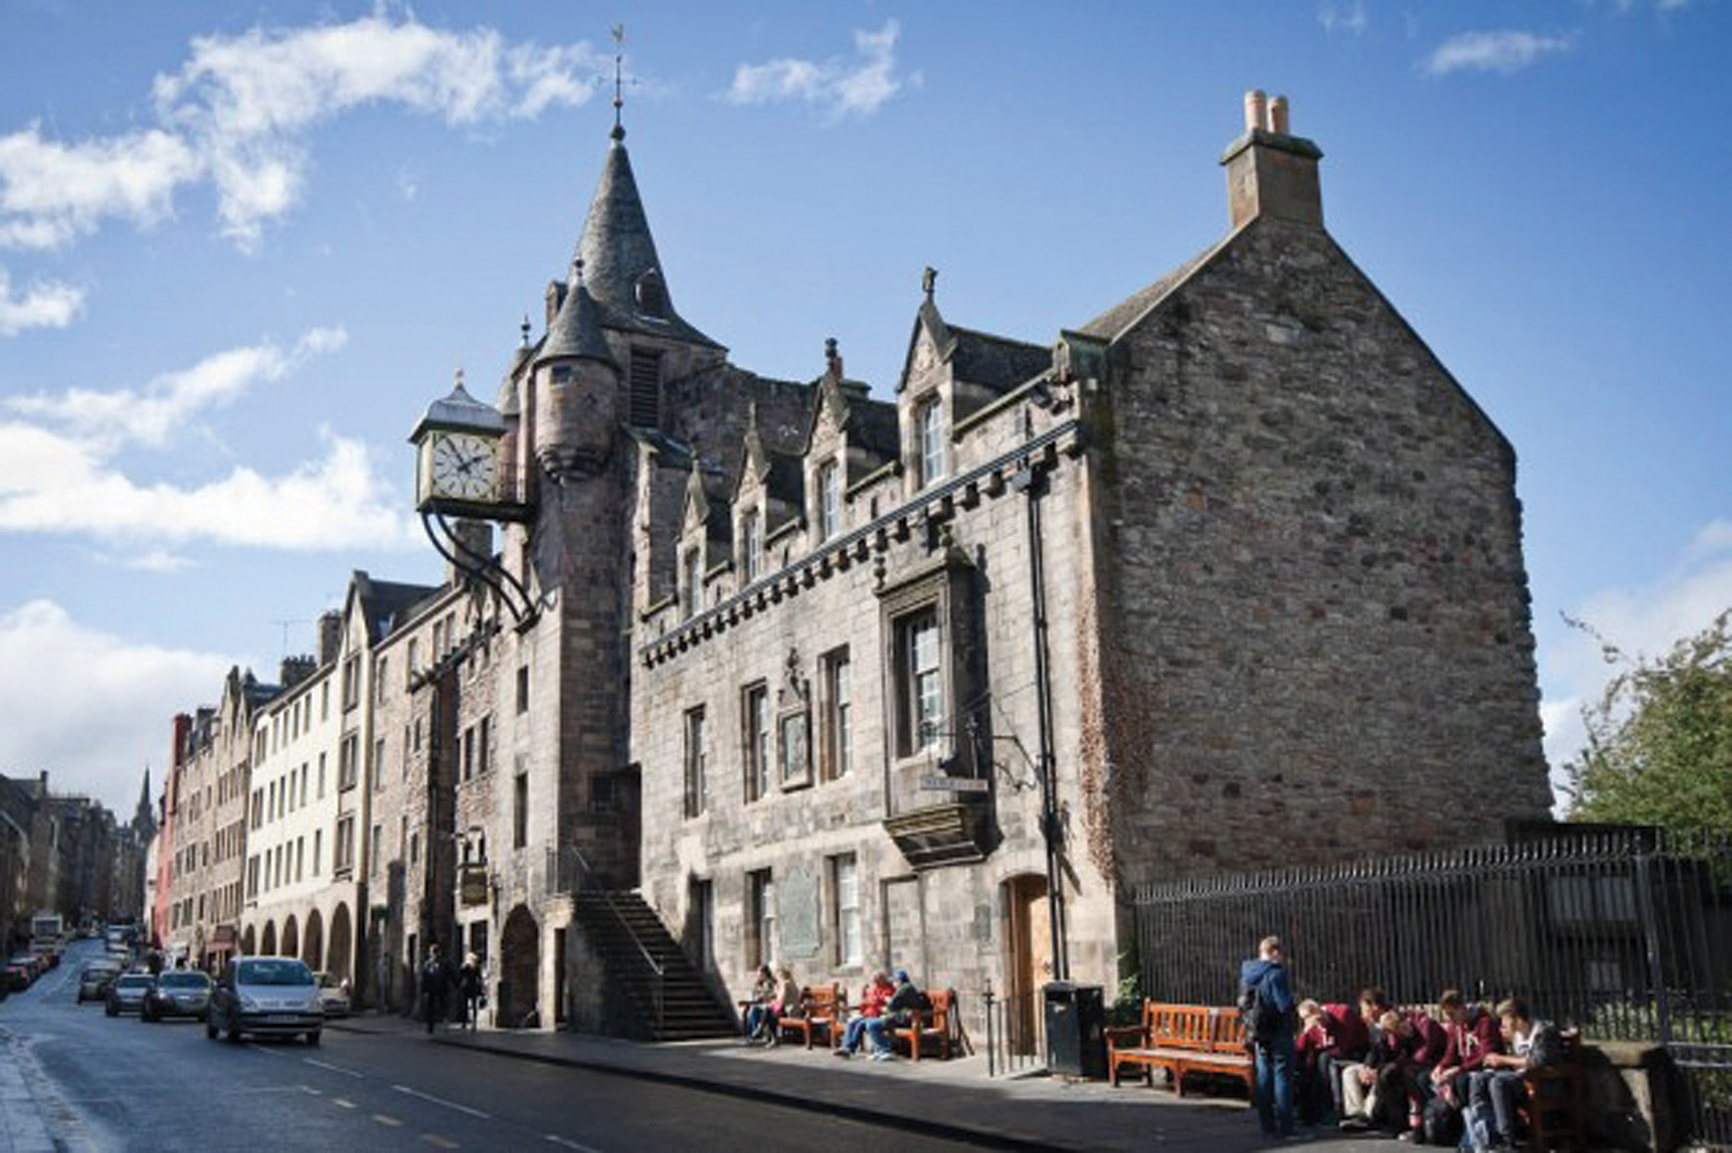 The People's Story Museum, opened in 1989 in the historic Canongate Tolbooth © The City of Edinburgh Council Museums & Galleries